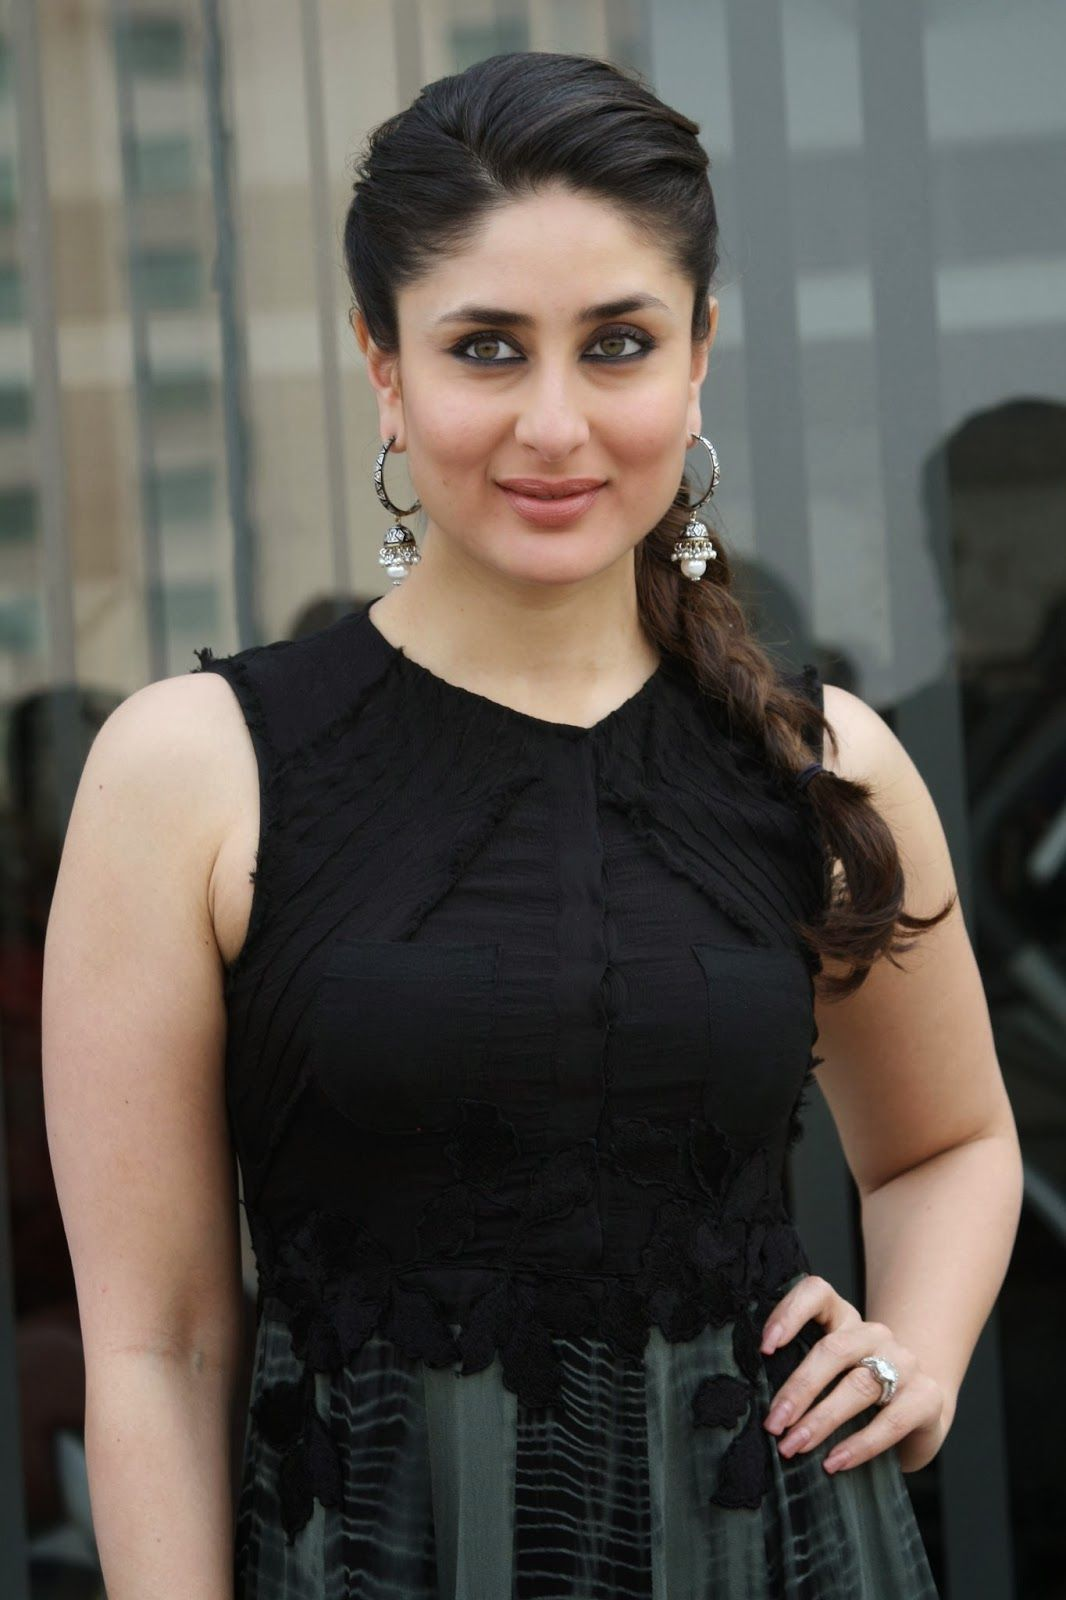 Glamorous Kareena Kapoor Photos In Black Dress Kareena Kapoor Photos Kareena Kapoor Pics Kareena Kapoor